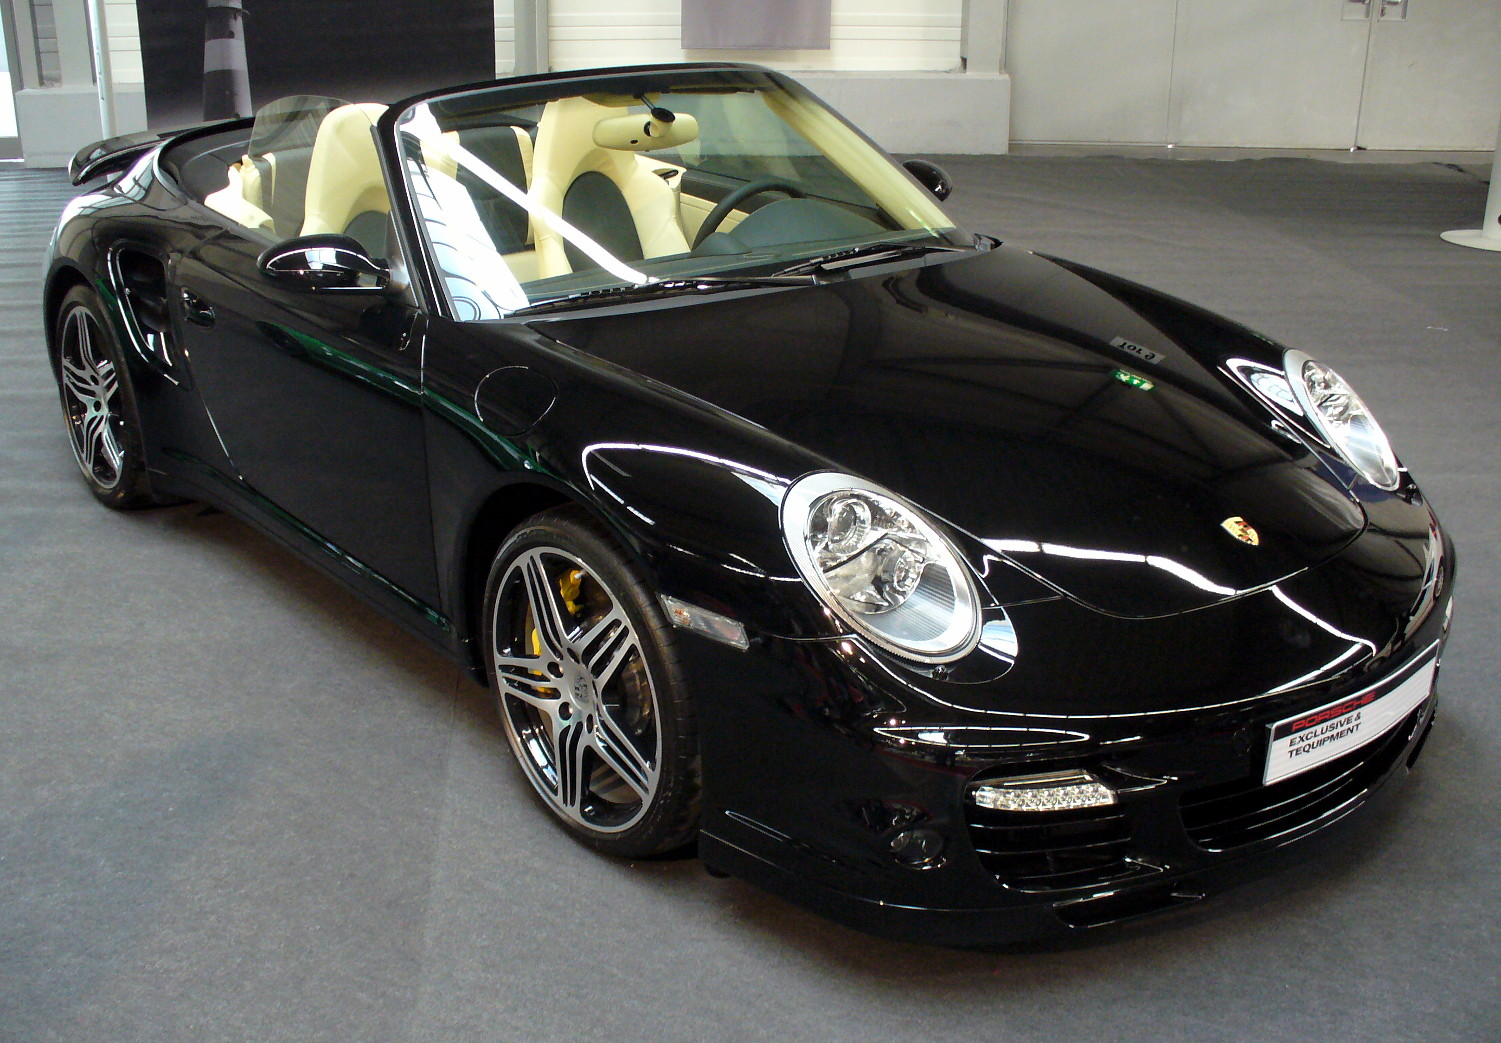 file porsche 997 turbo cabriolet jpg wikimedia commons. Black Bedroom Furniture Sets. Home Design Ideas